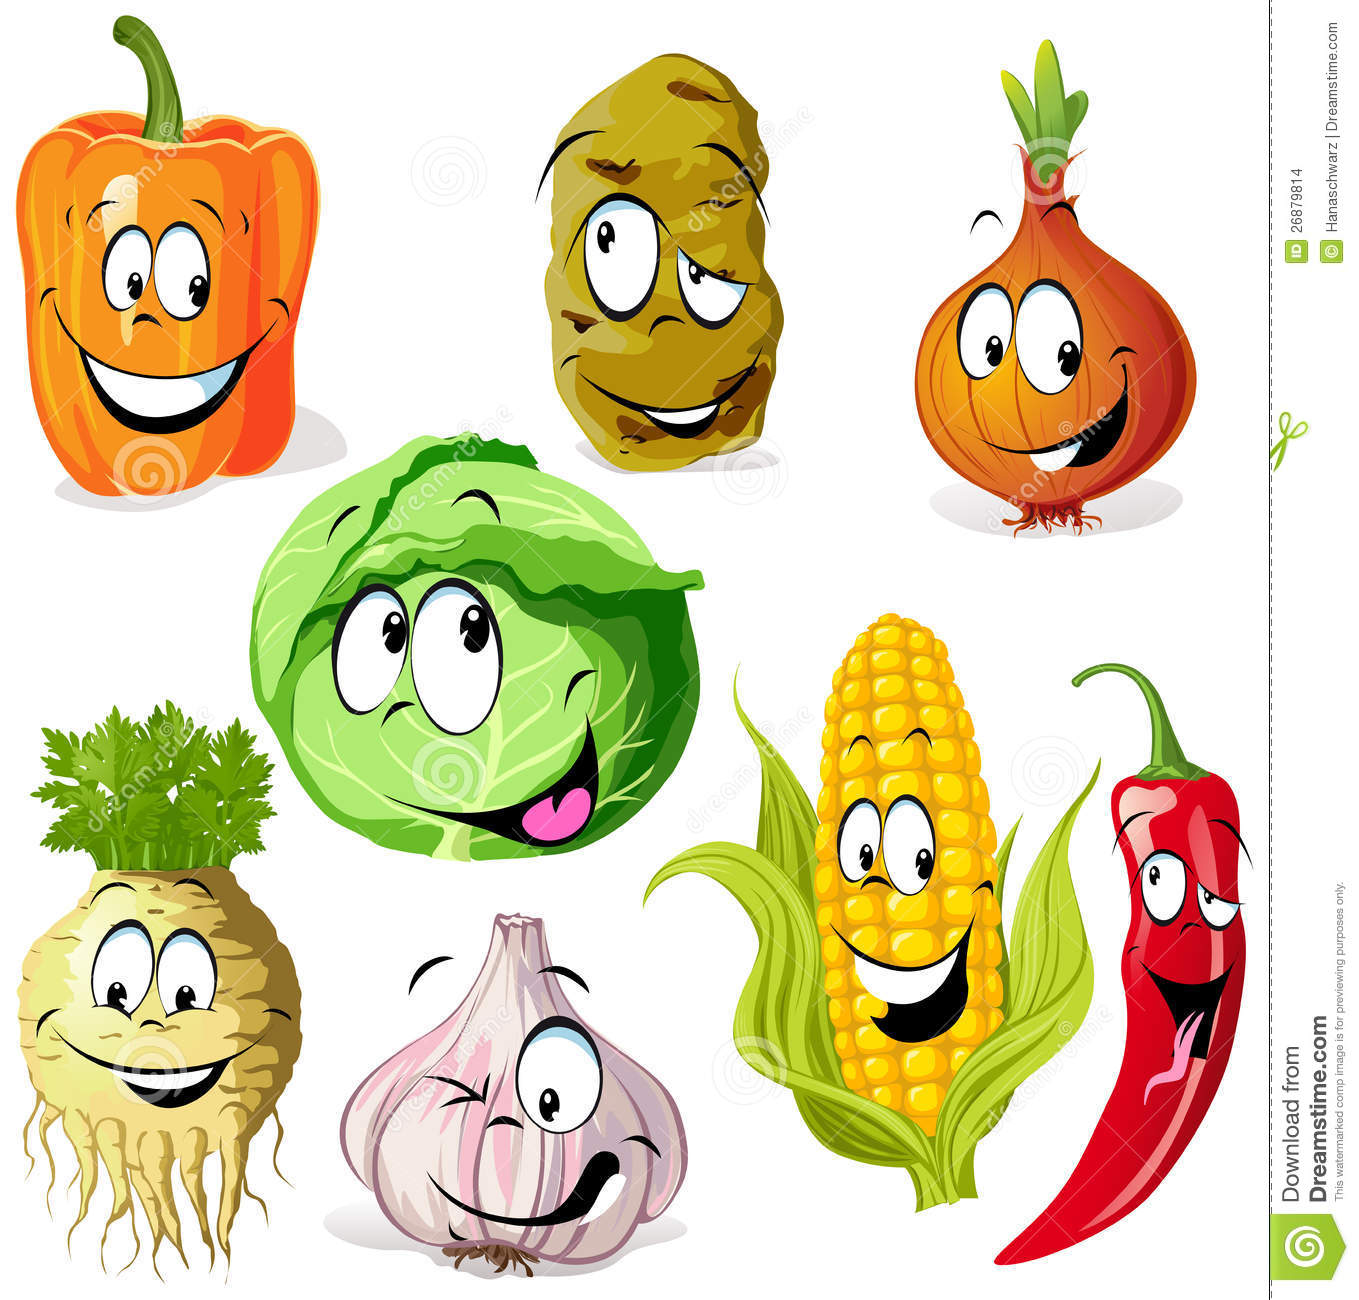 Funny Vegetable Cartoon Royalty Free Stock Photo.